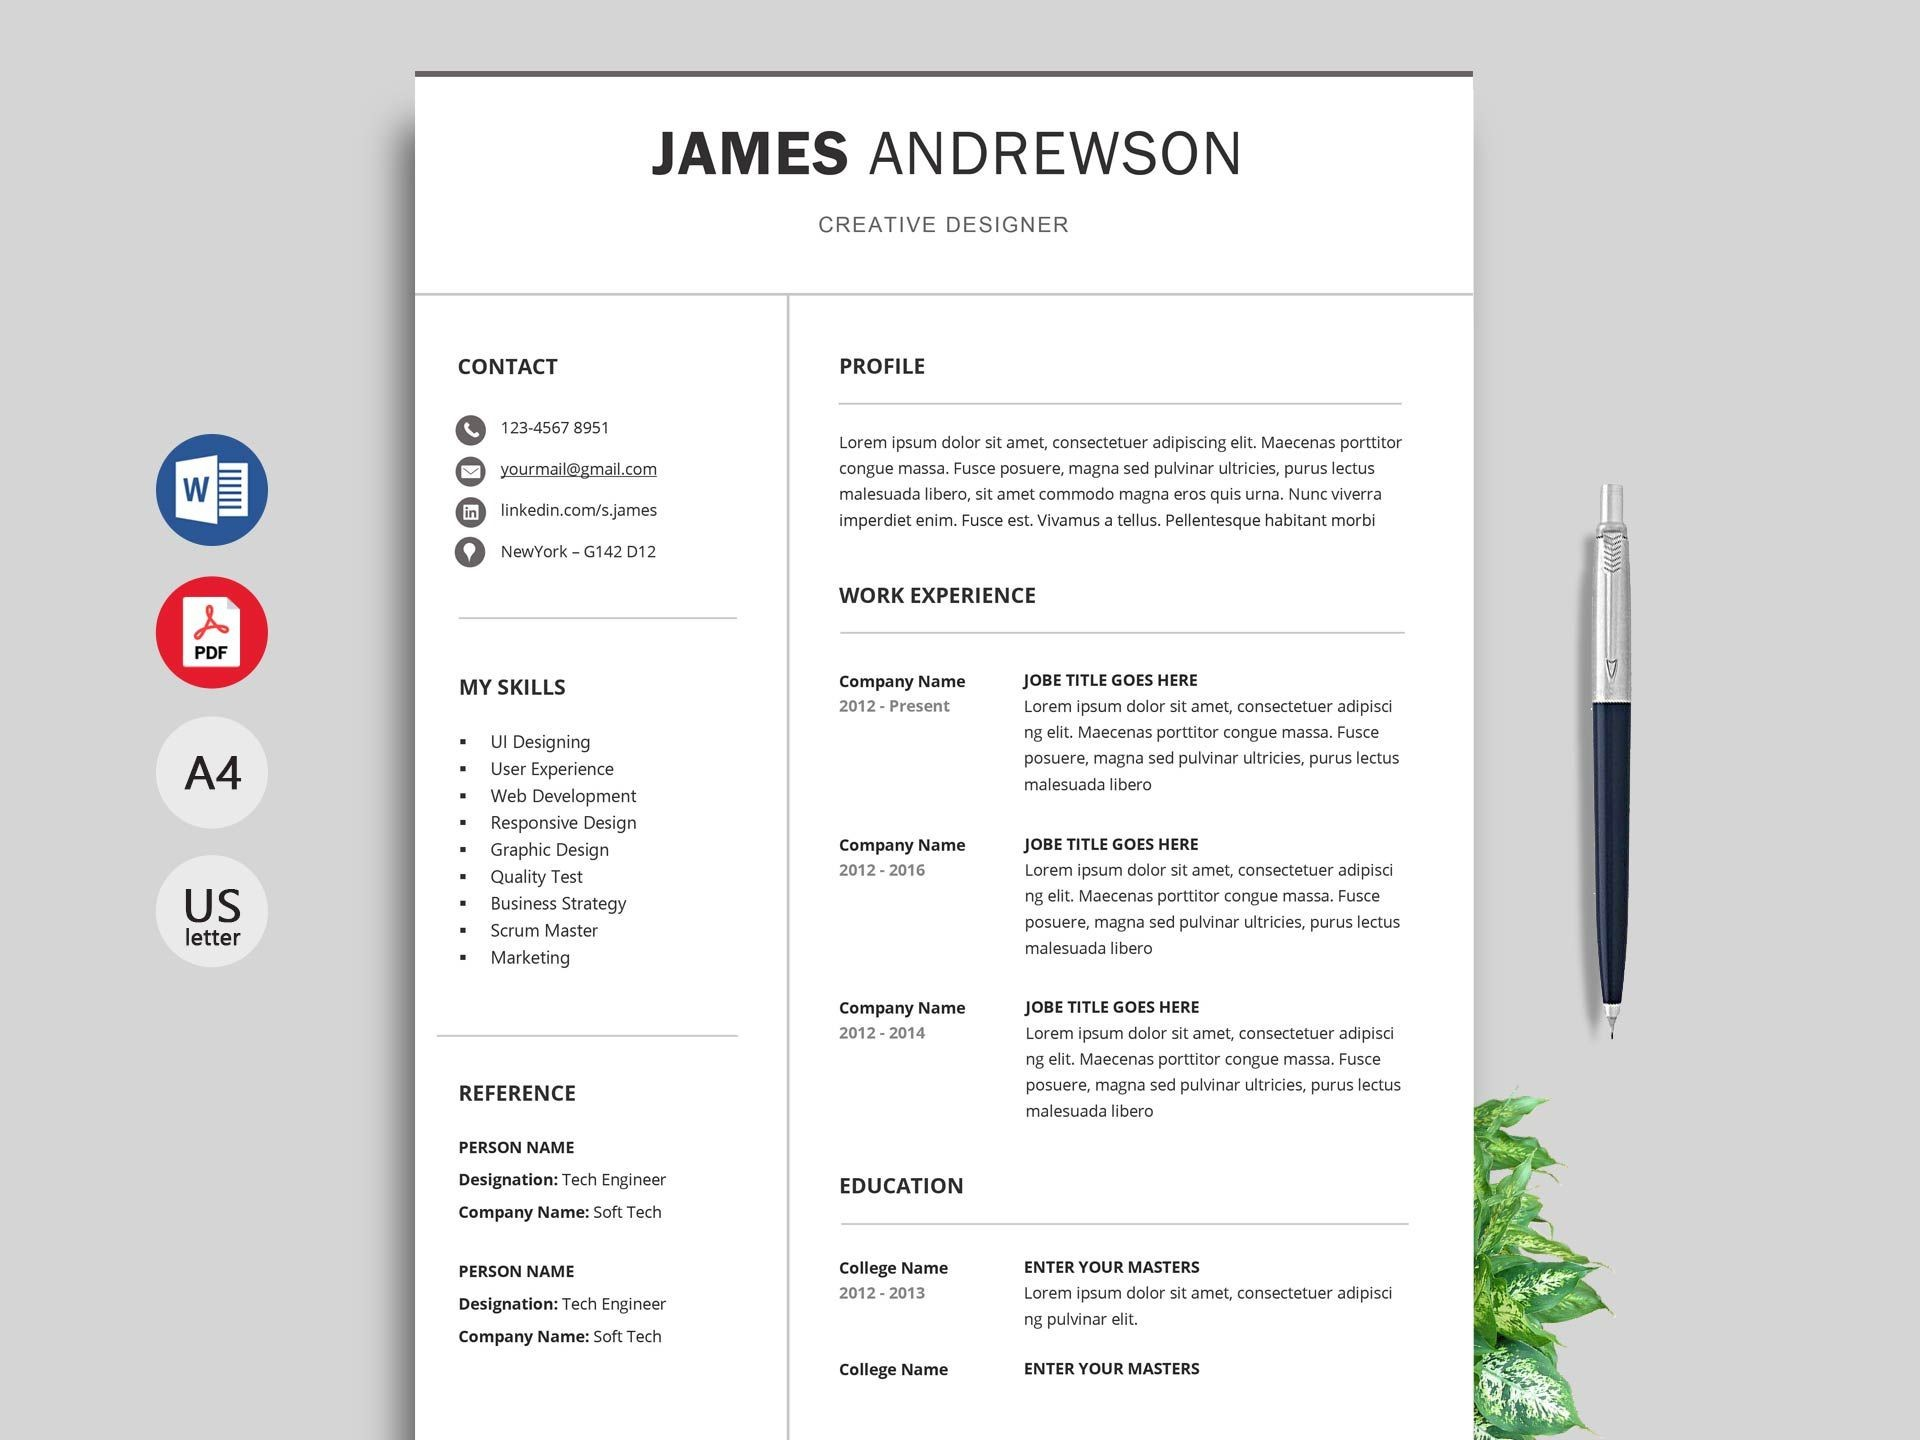 002 Shocking Cv Template Free Download Word Doc Idea  Editable Document For Fresher Student Engineer1920